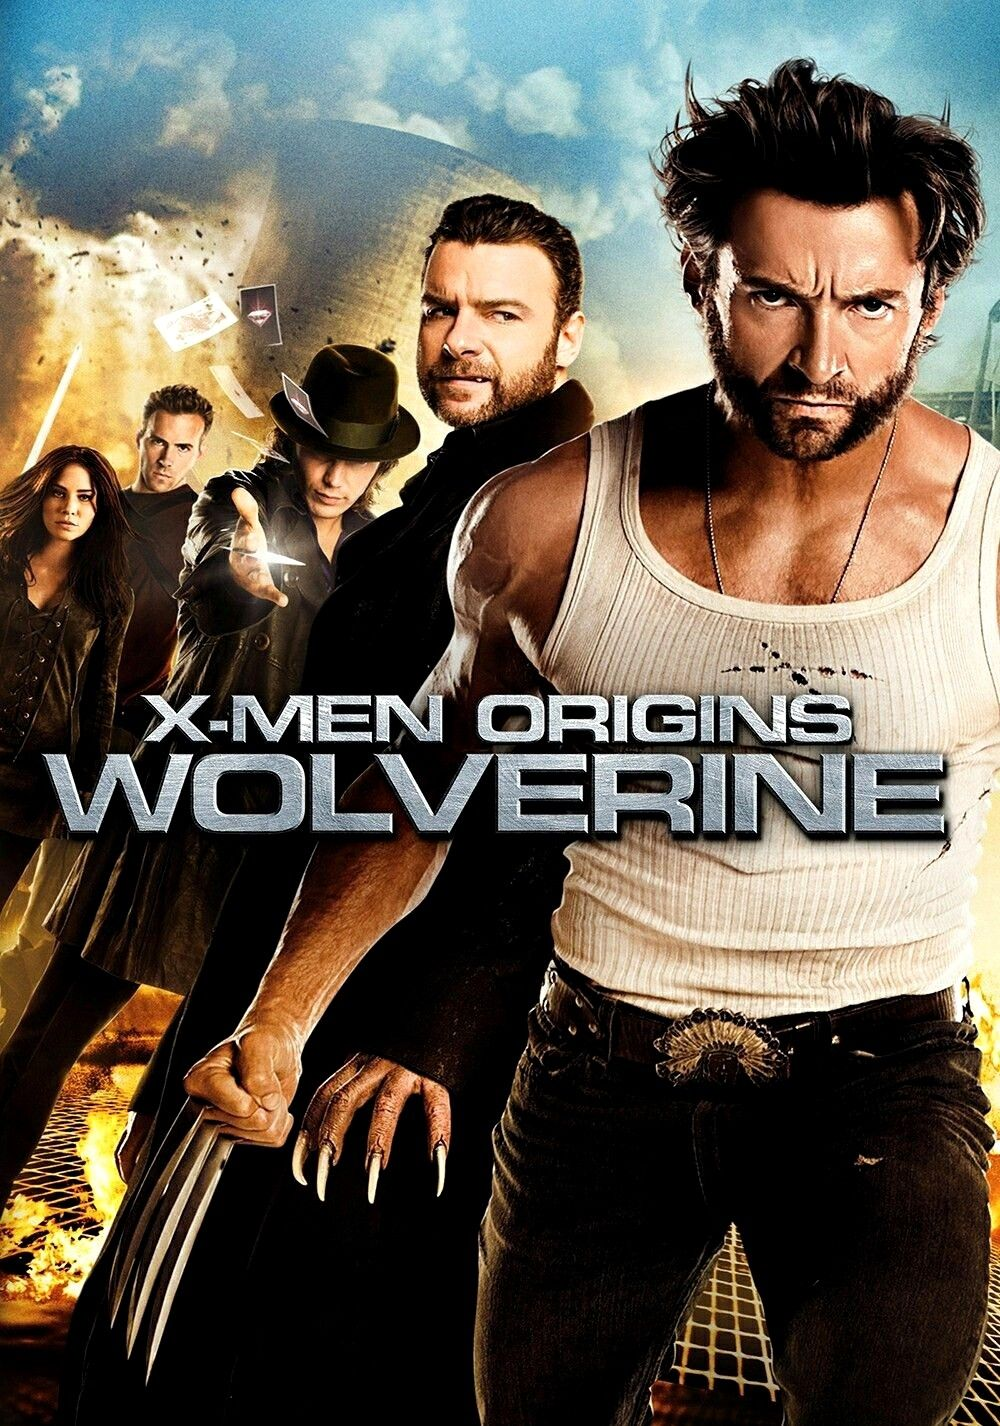 X Men Origins Wolverine 2009 Wolverine 2009 Wolverine Movie X Men